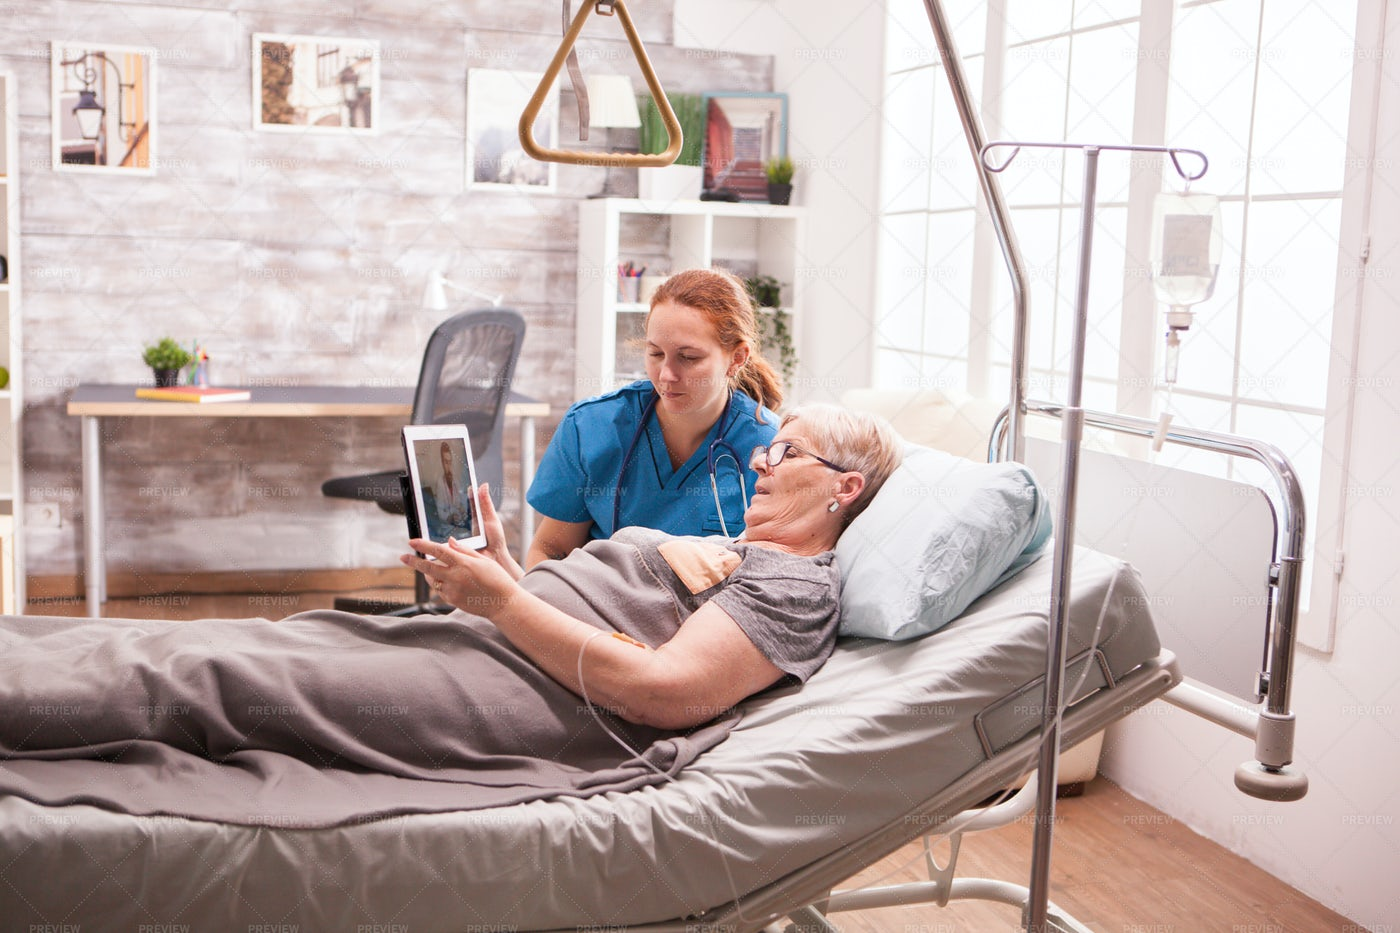 Medical Report On Tablet: Stock Photos